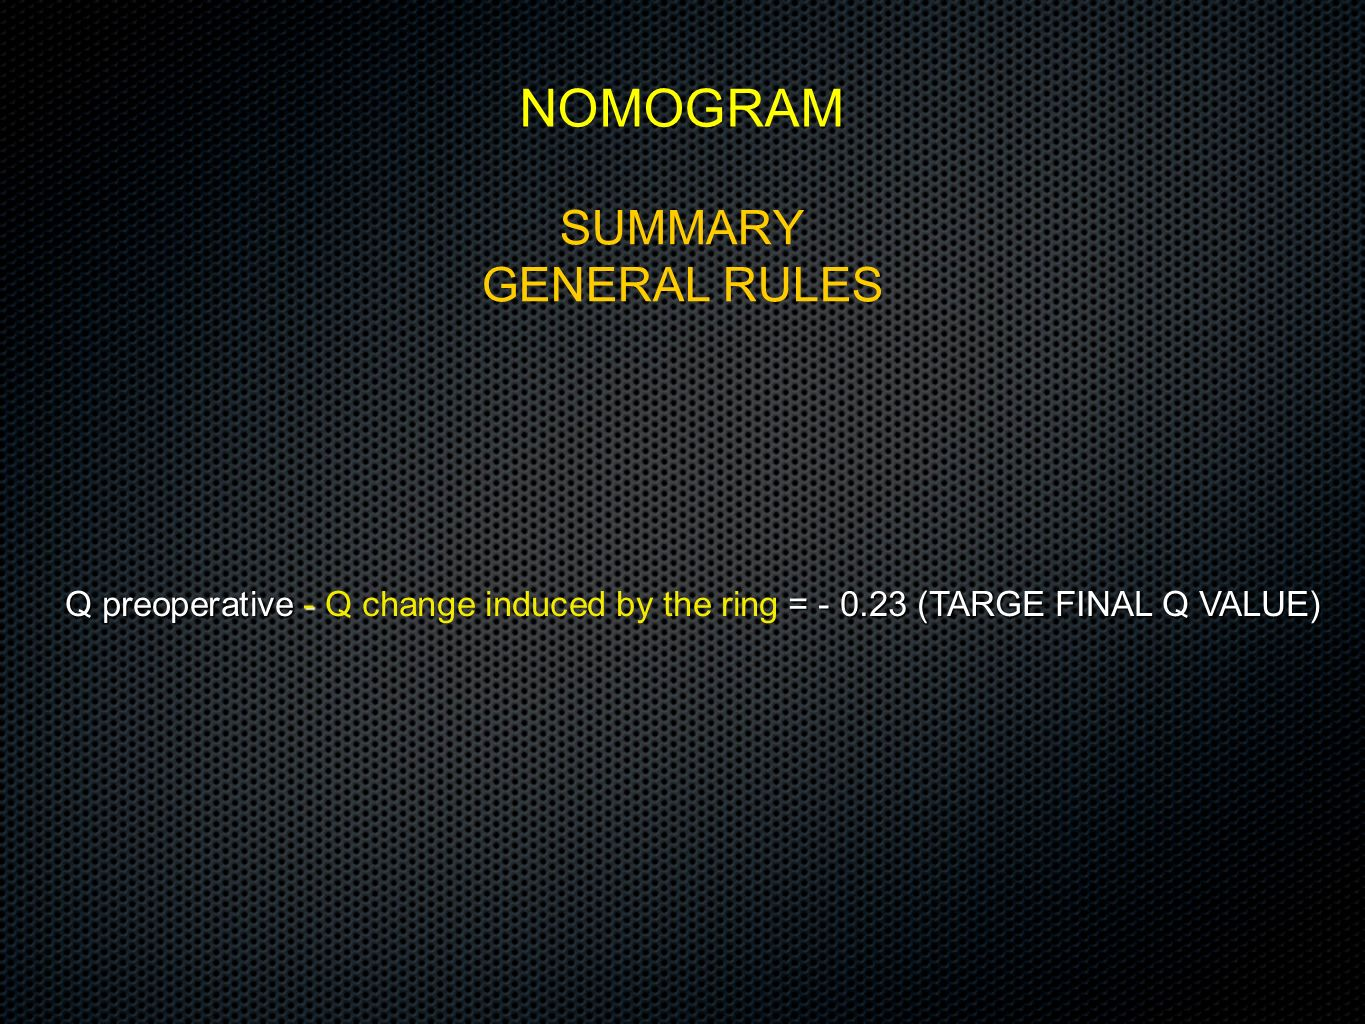 NOMOGRAM SUMMARY GENERAL RULES